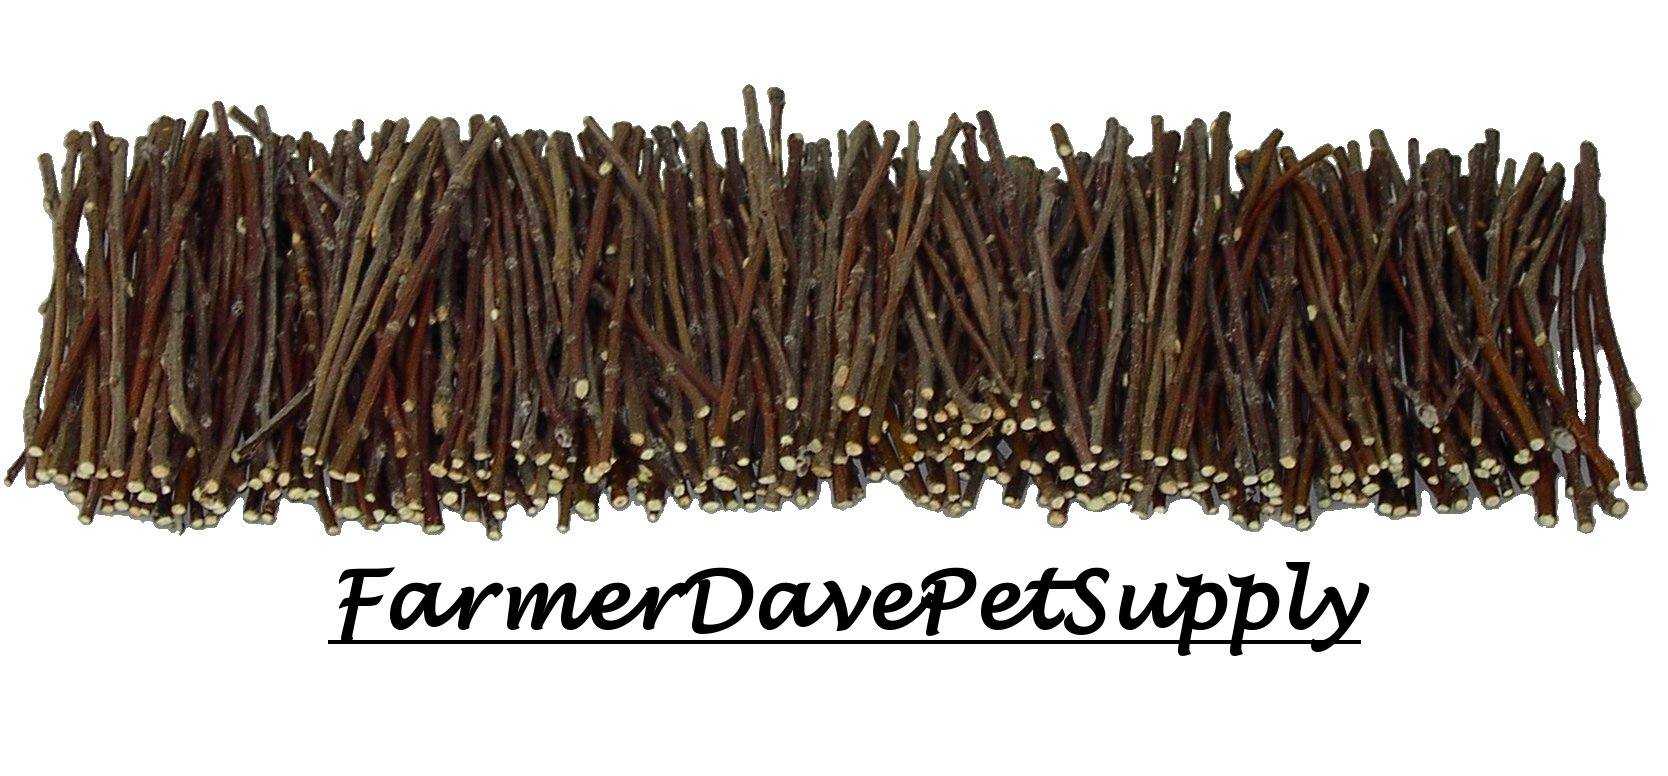 FarmerDavePetSupply 500 Apple Skinny Twig Chew Jumbo Pack for Rabbits, Guinea Pigs, Chinchillas and Other Small Animals by FarmerDavePetSupply